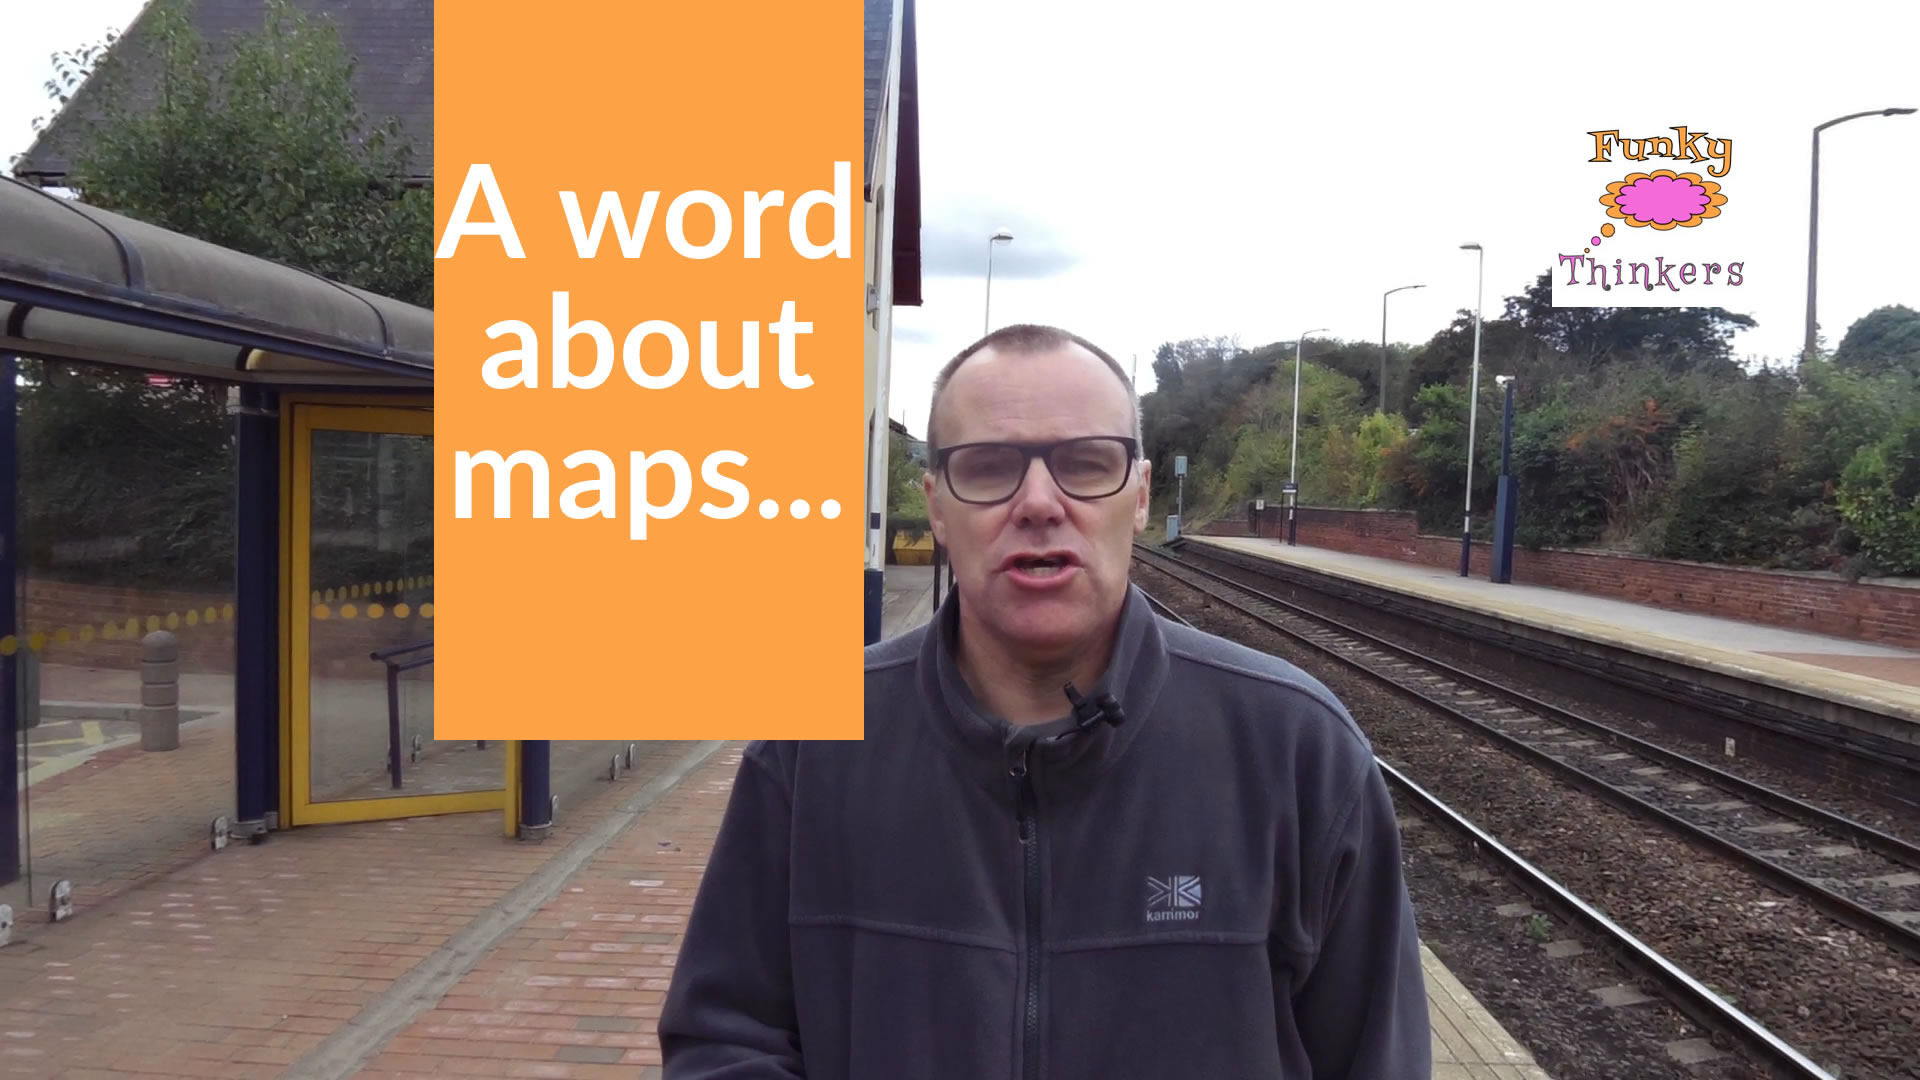 A word about Maps